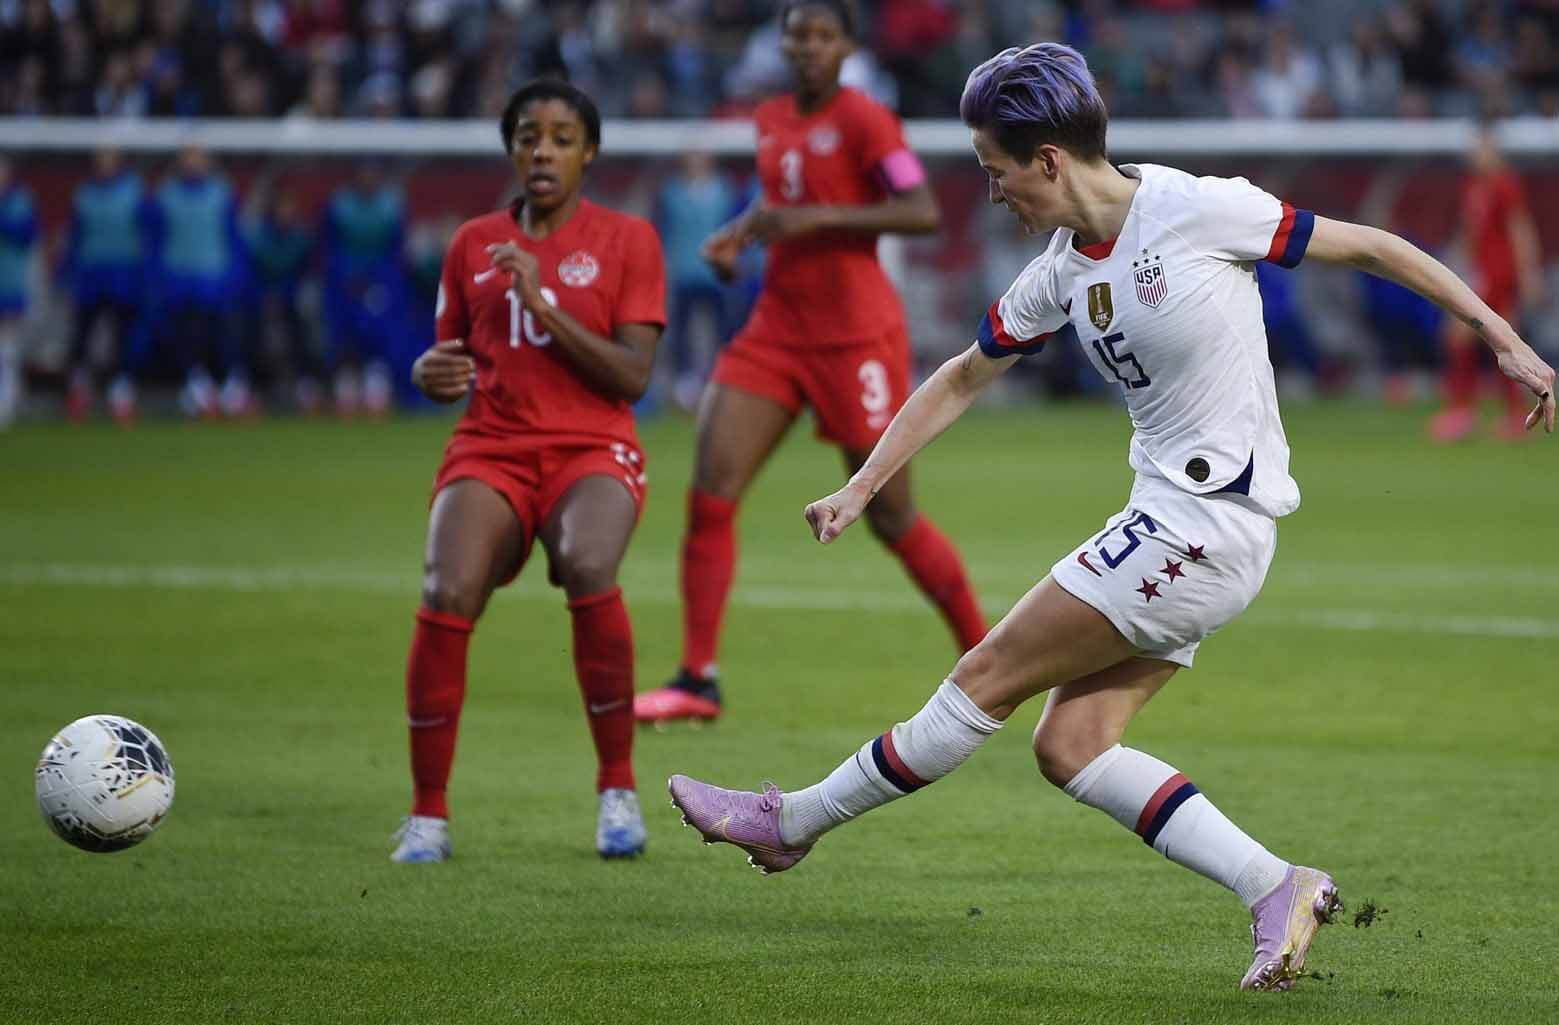 United States forward Megan Rapinoe (15) shoots against Canada during the second half of the CONCACAF Women's Olympic Qualifying soccer tournament at Dignity Health Sports Park. - USA TODAY Sports